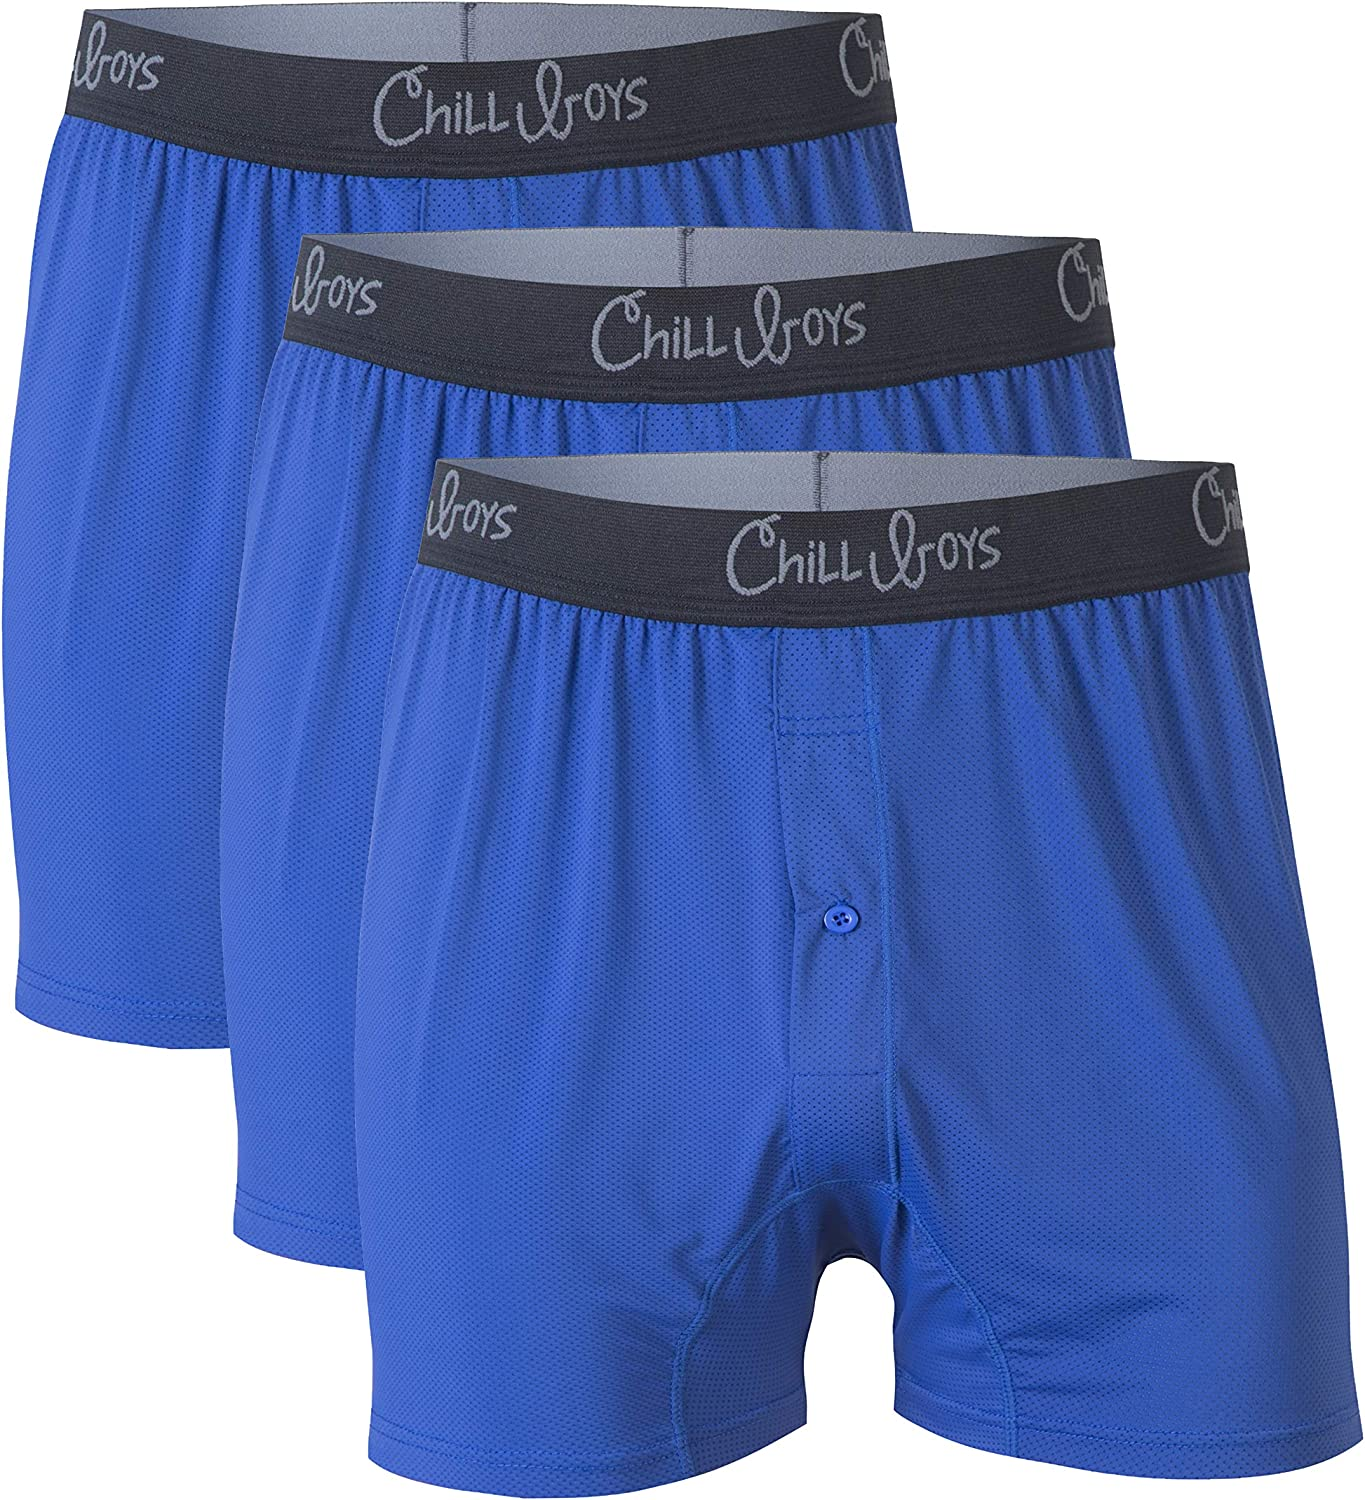 Mens Cool Comfortable Performance Boxers- 3 pack, Breathable Underwear, Soft Quick-Dry Boxer Shorts by Chill Boys